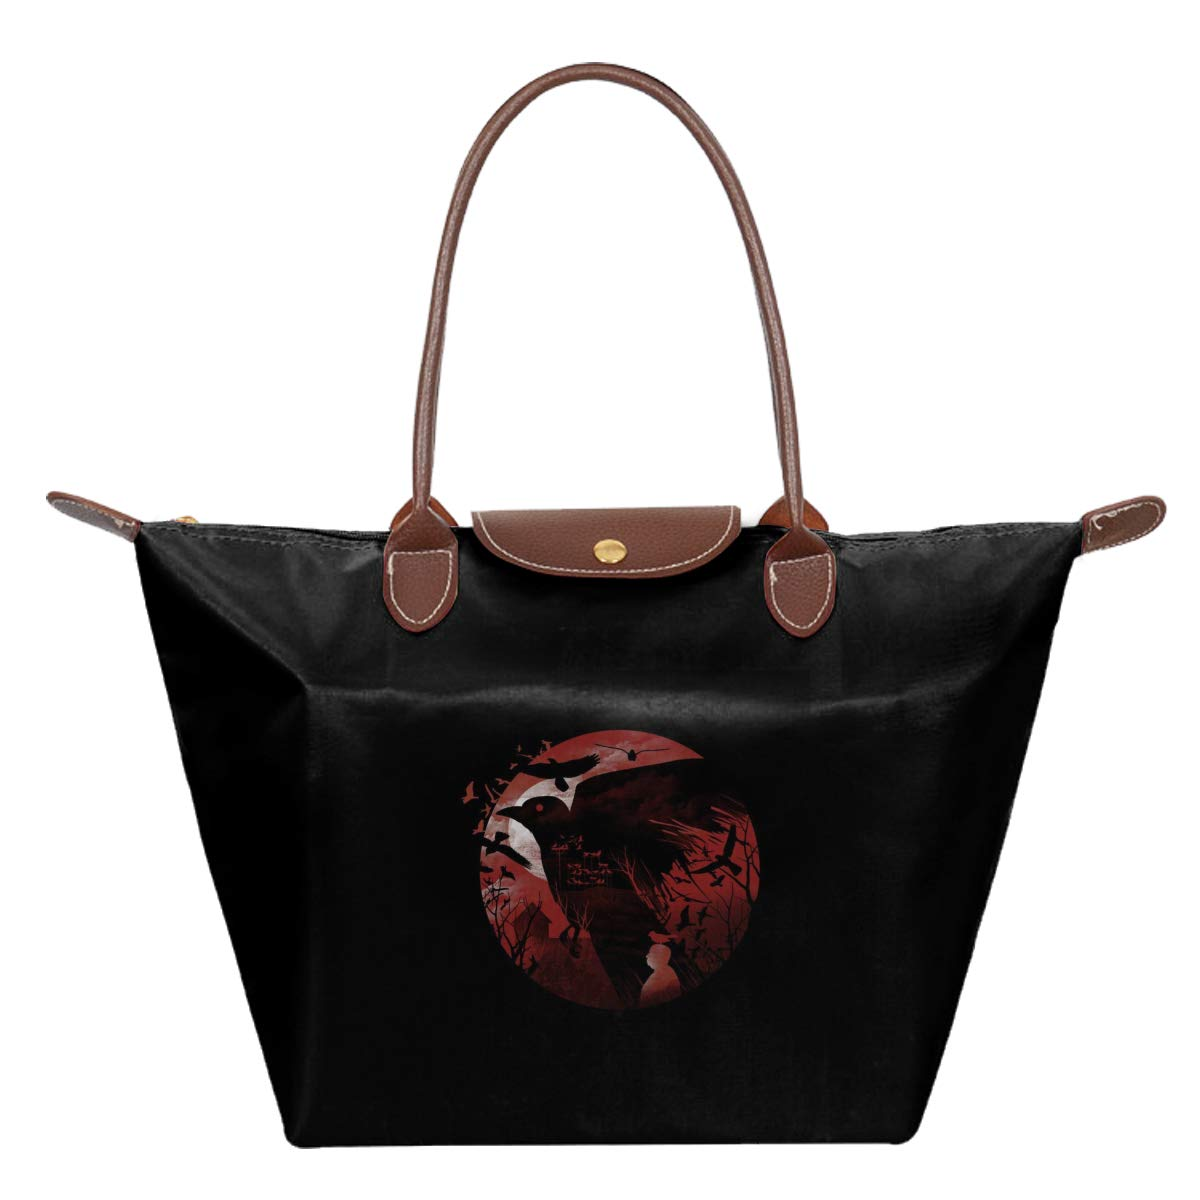 Alfred Hitchcock Silhouette The Birds Waterproof Leather Folded Messenger Nylon Bag Travel Tote Hopping Folding School Handbags